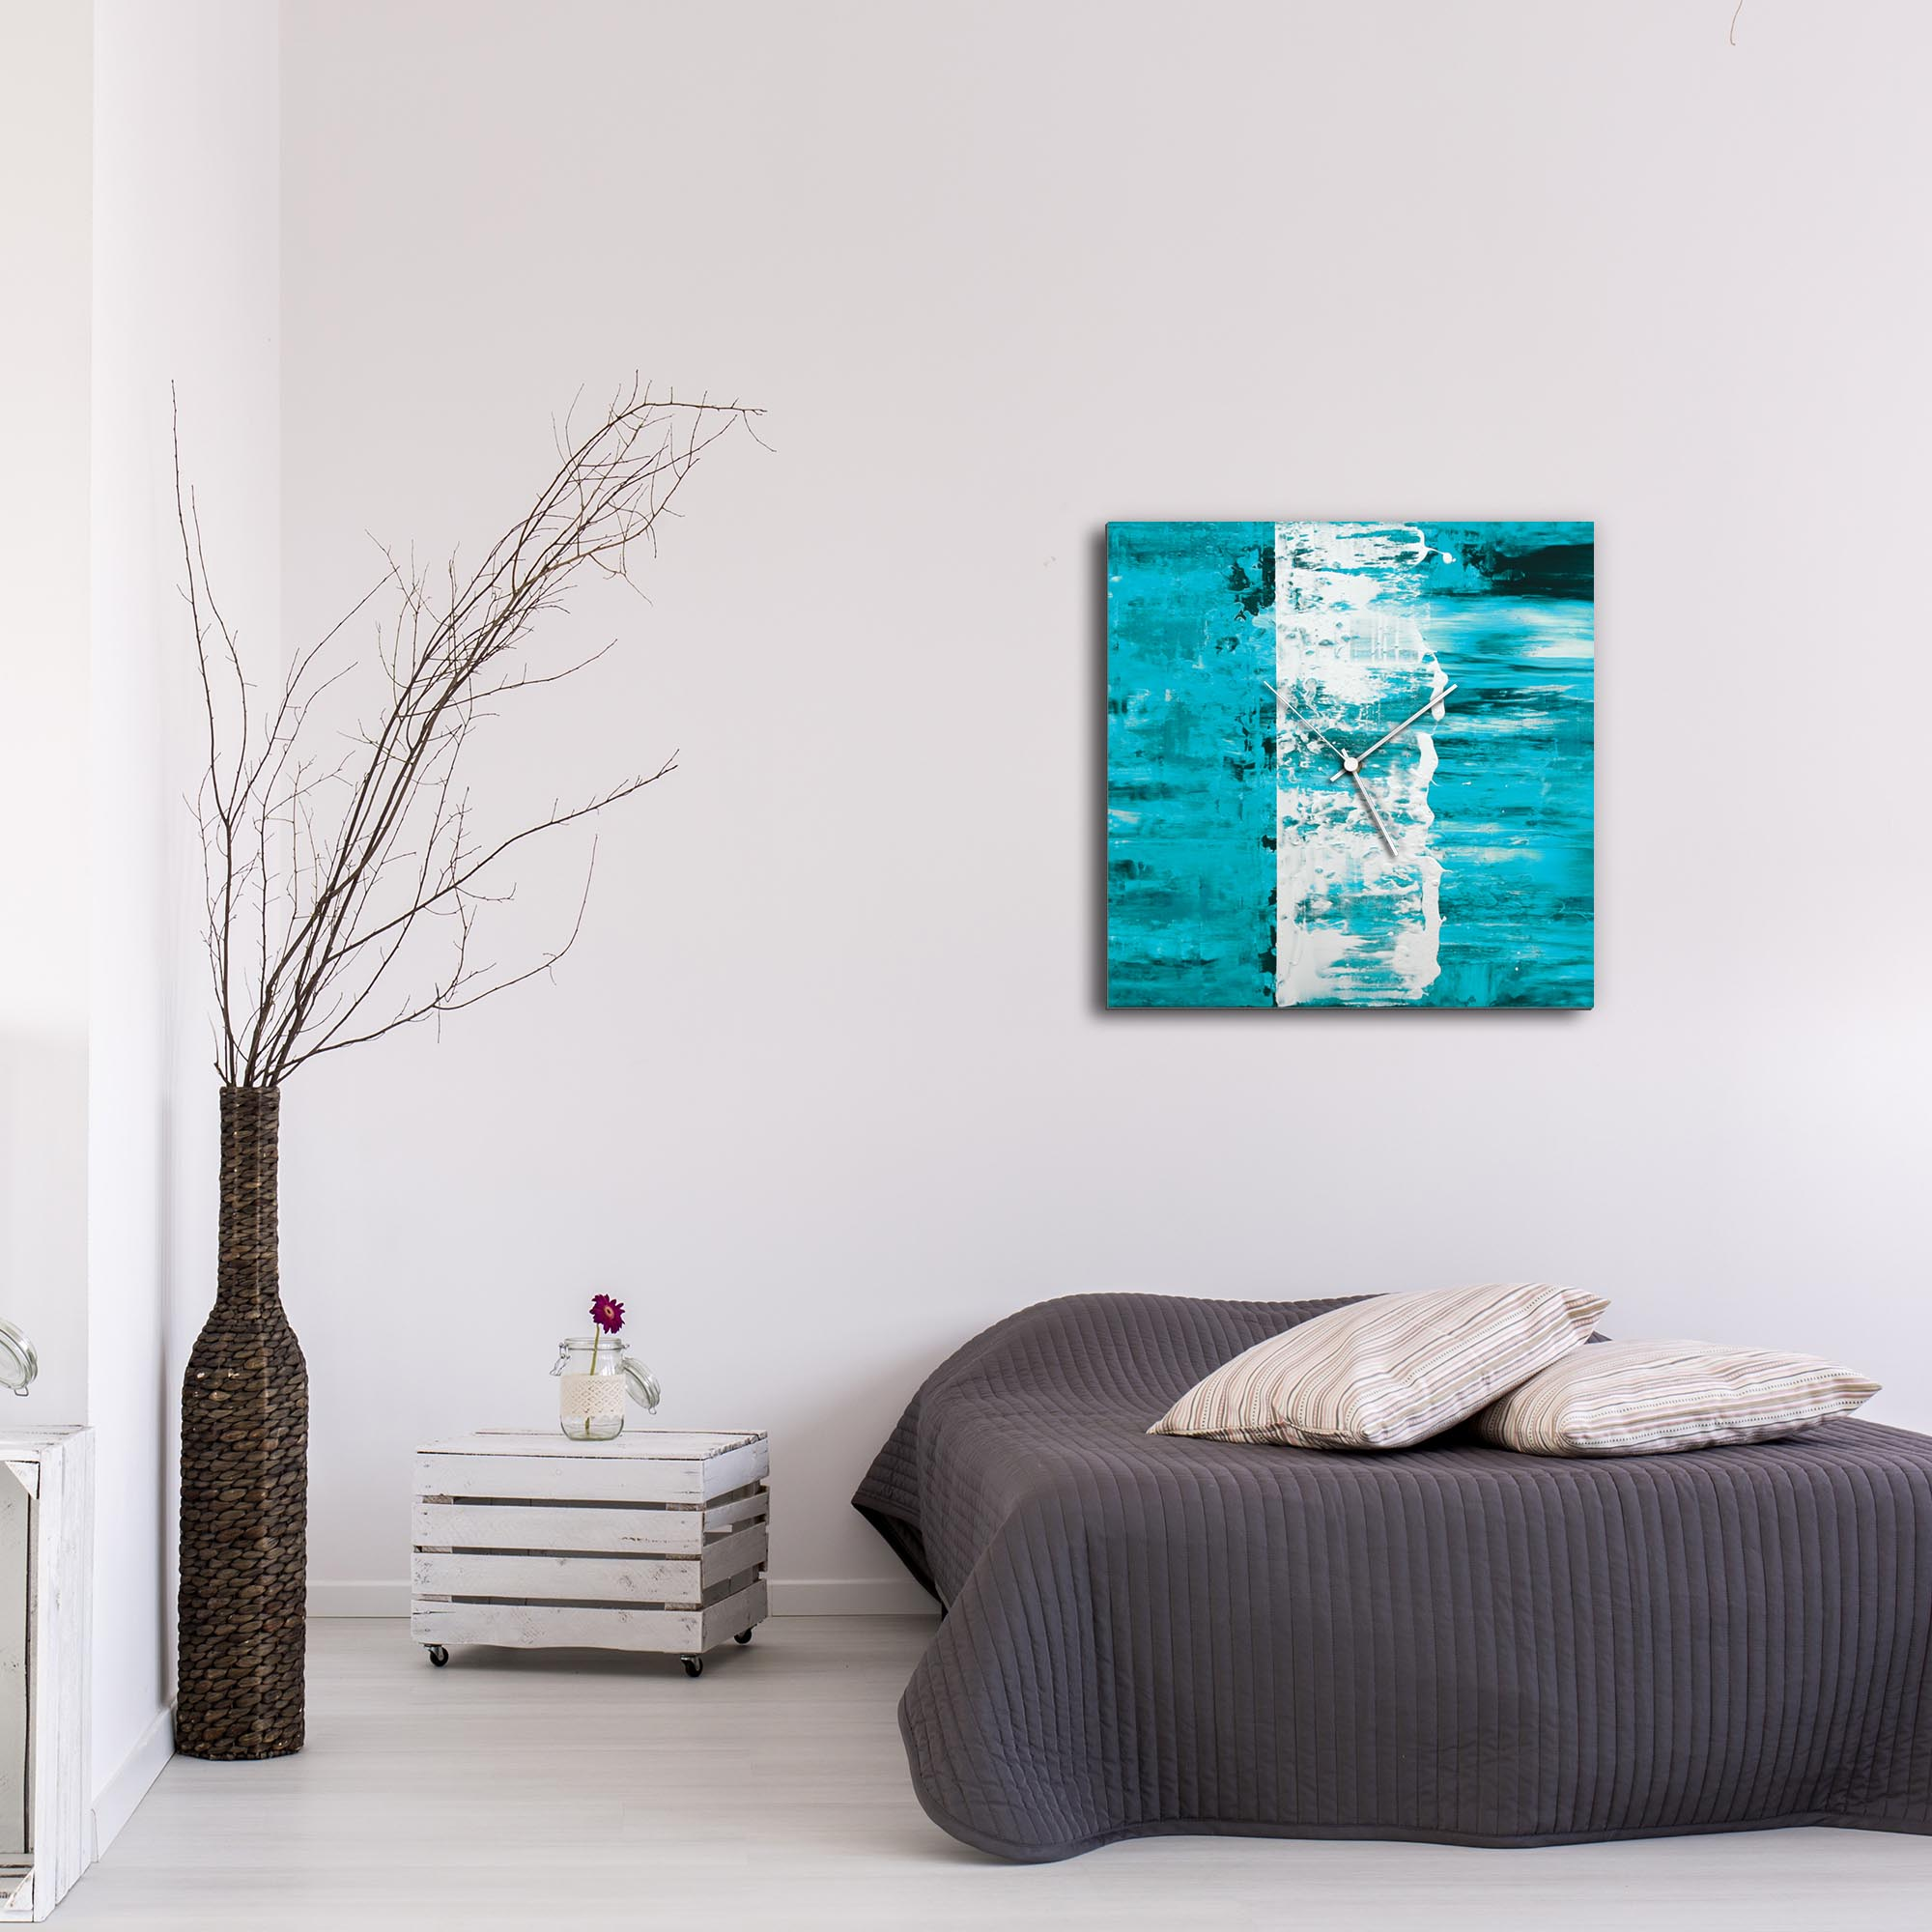 Teal Street Square Clock Large by Mendo Vasilevski - Urban Abstract Home Decor - Lifestyle View